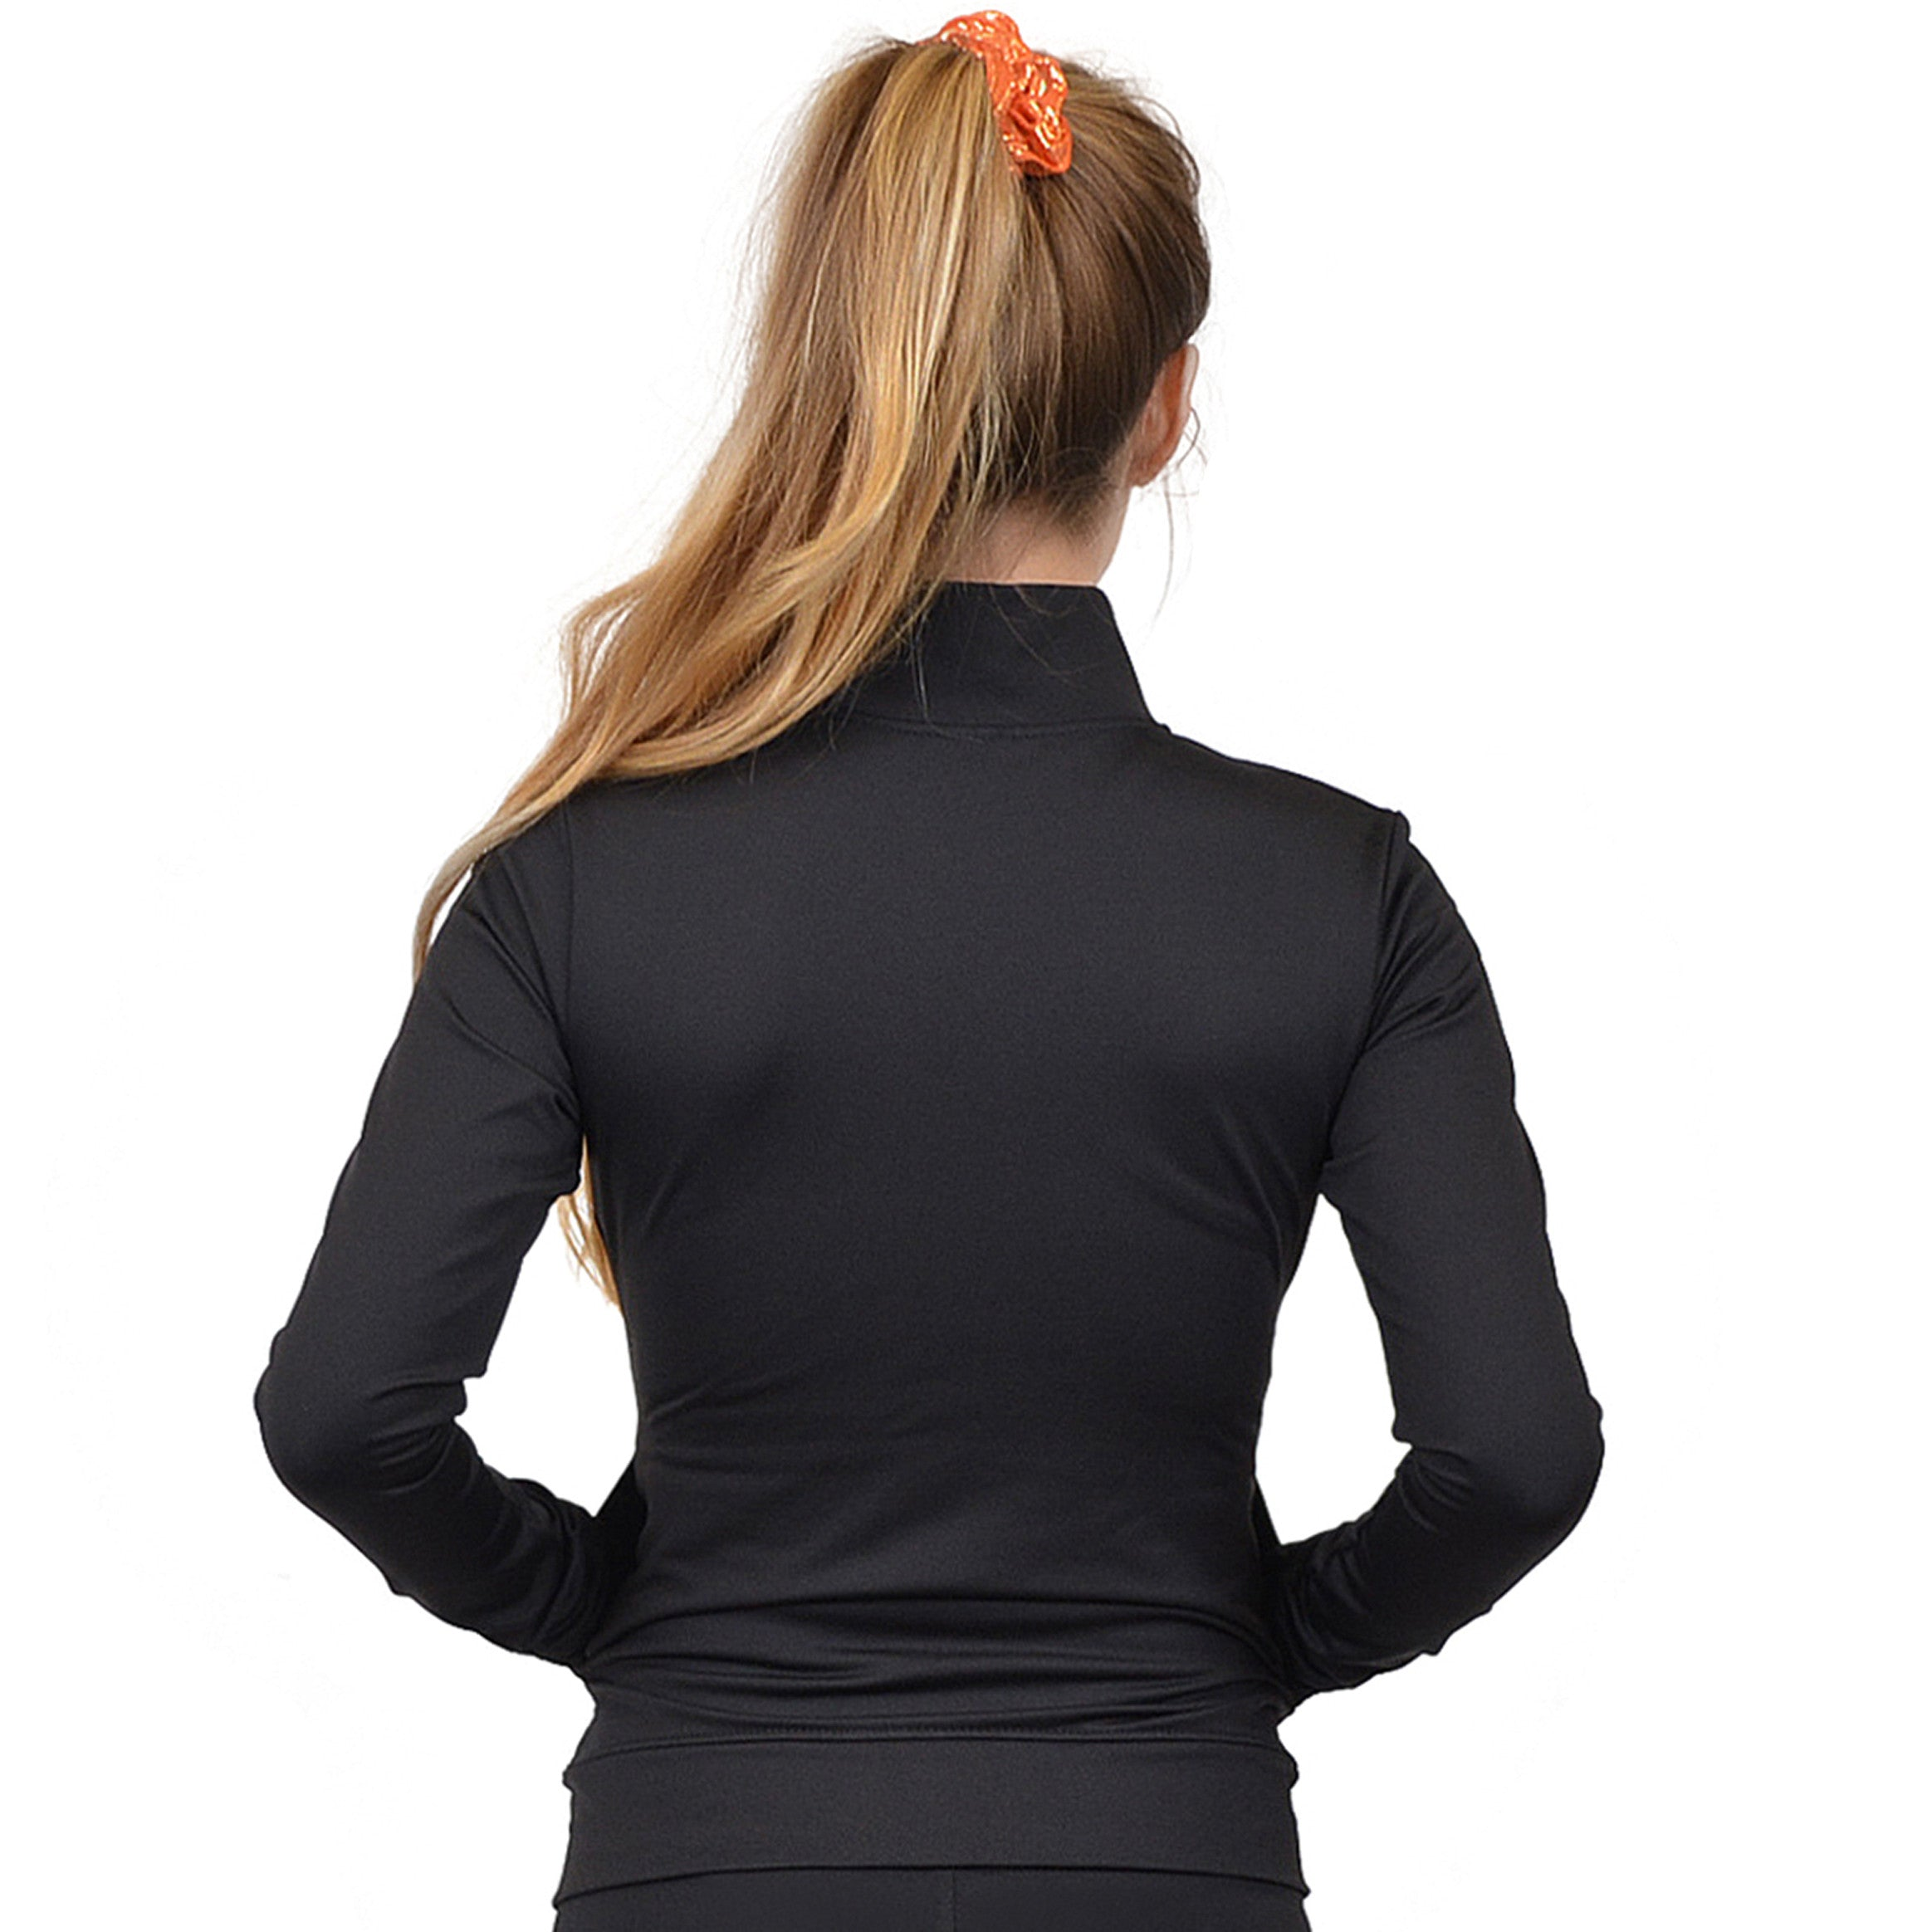 Personalizable and Customizable Women's PERFORMANCE Cadet Warmup Jacket